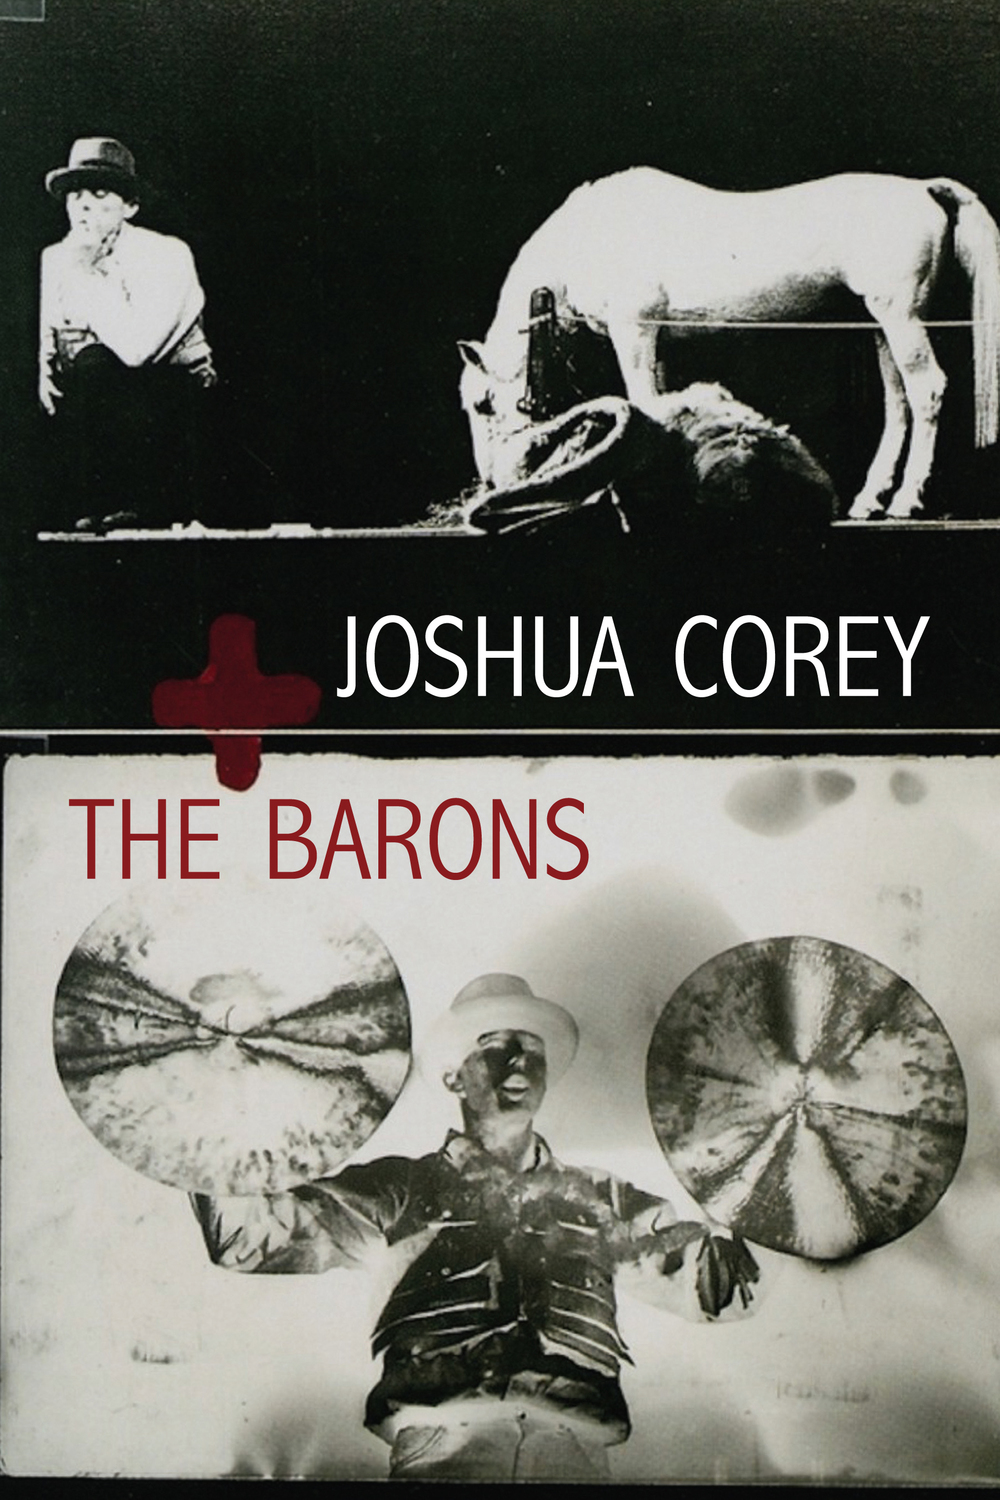 The Barons-Cover-6x9in-300dpi-RGB.jpg